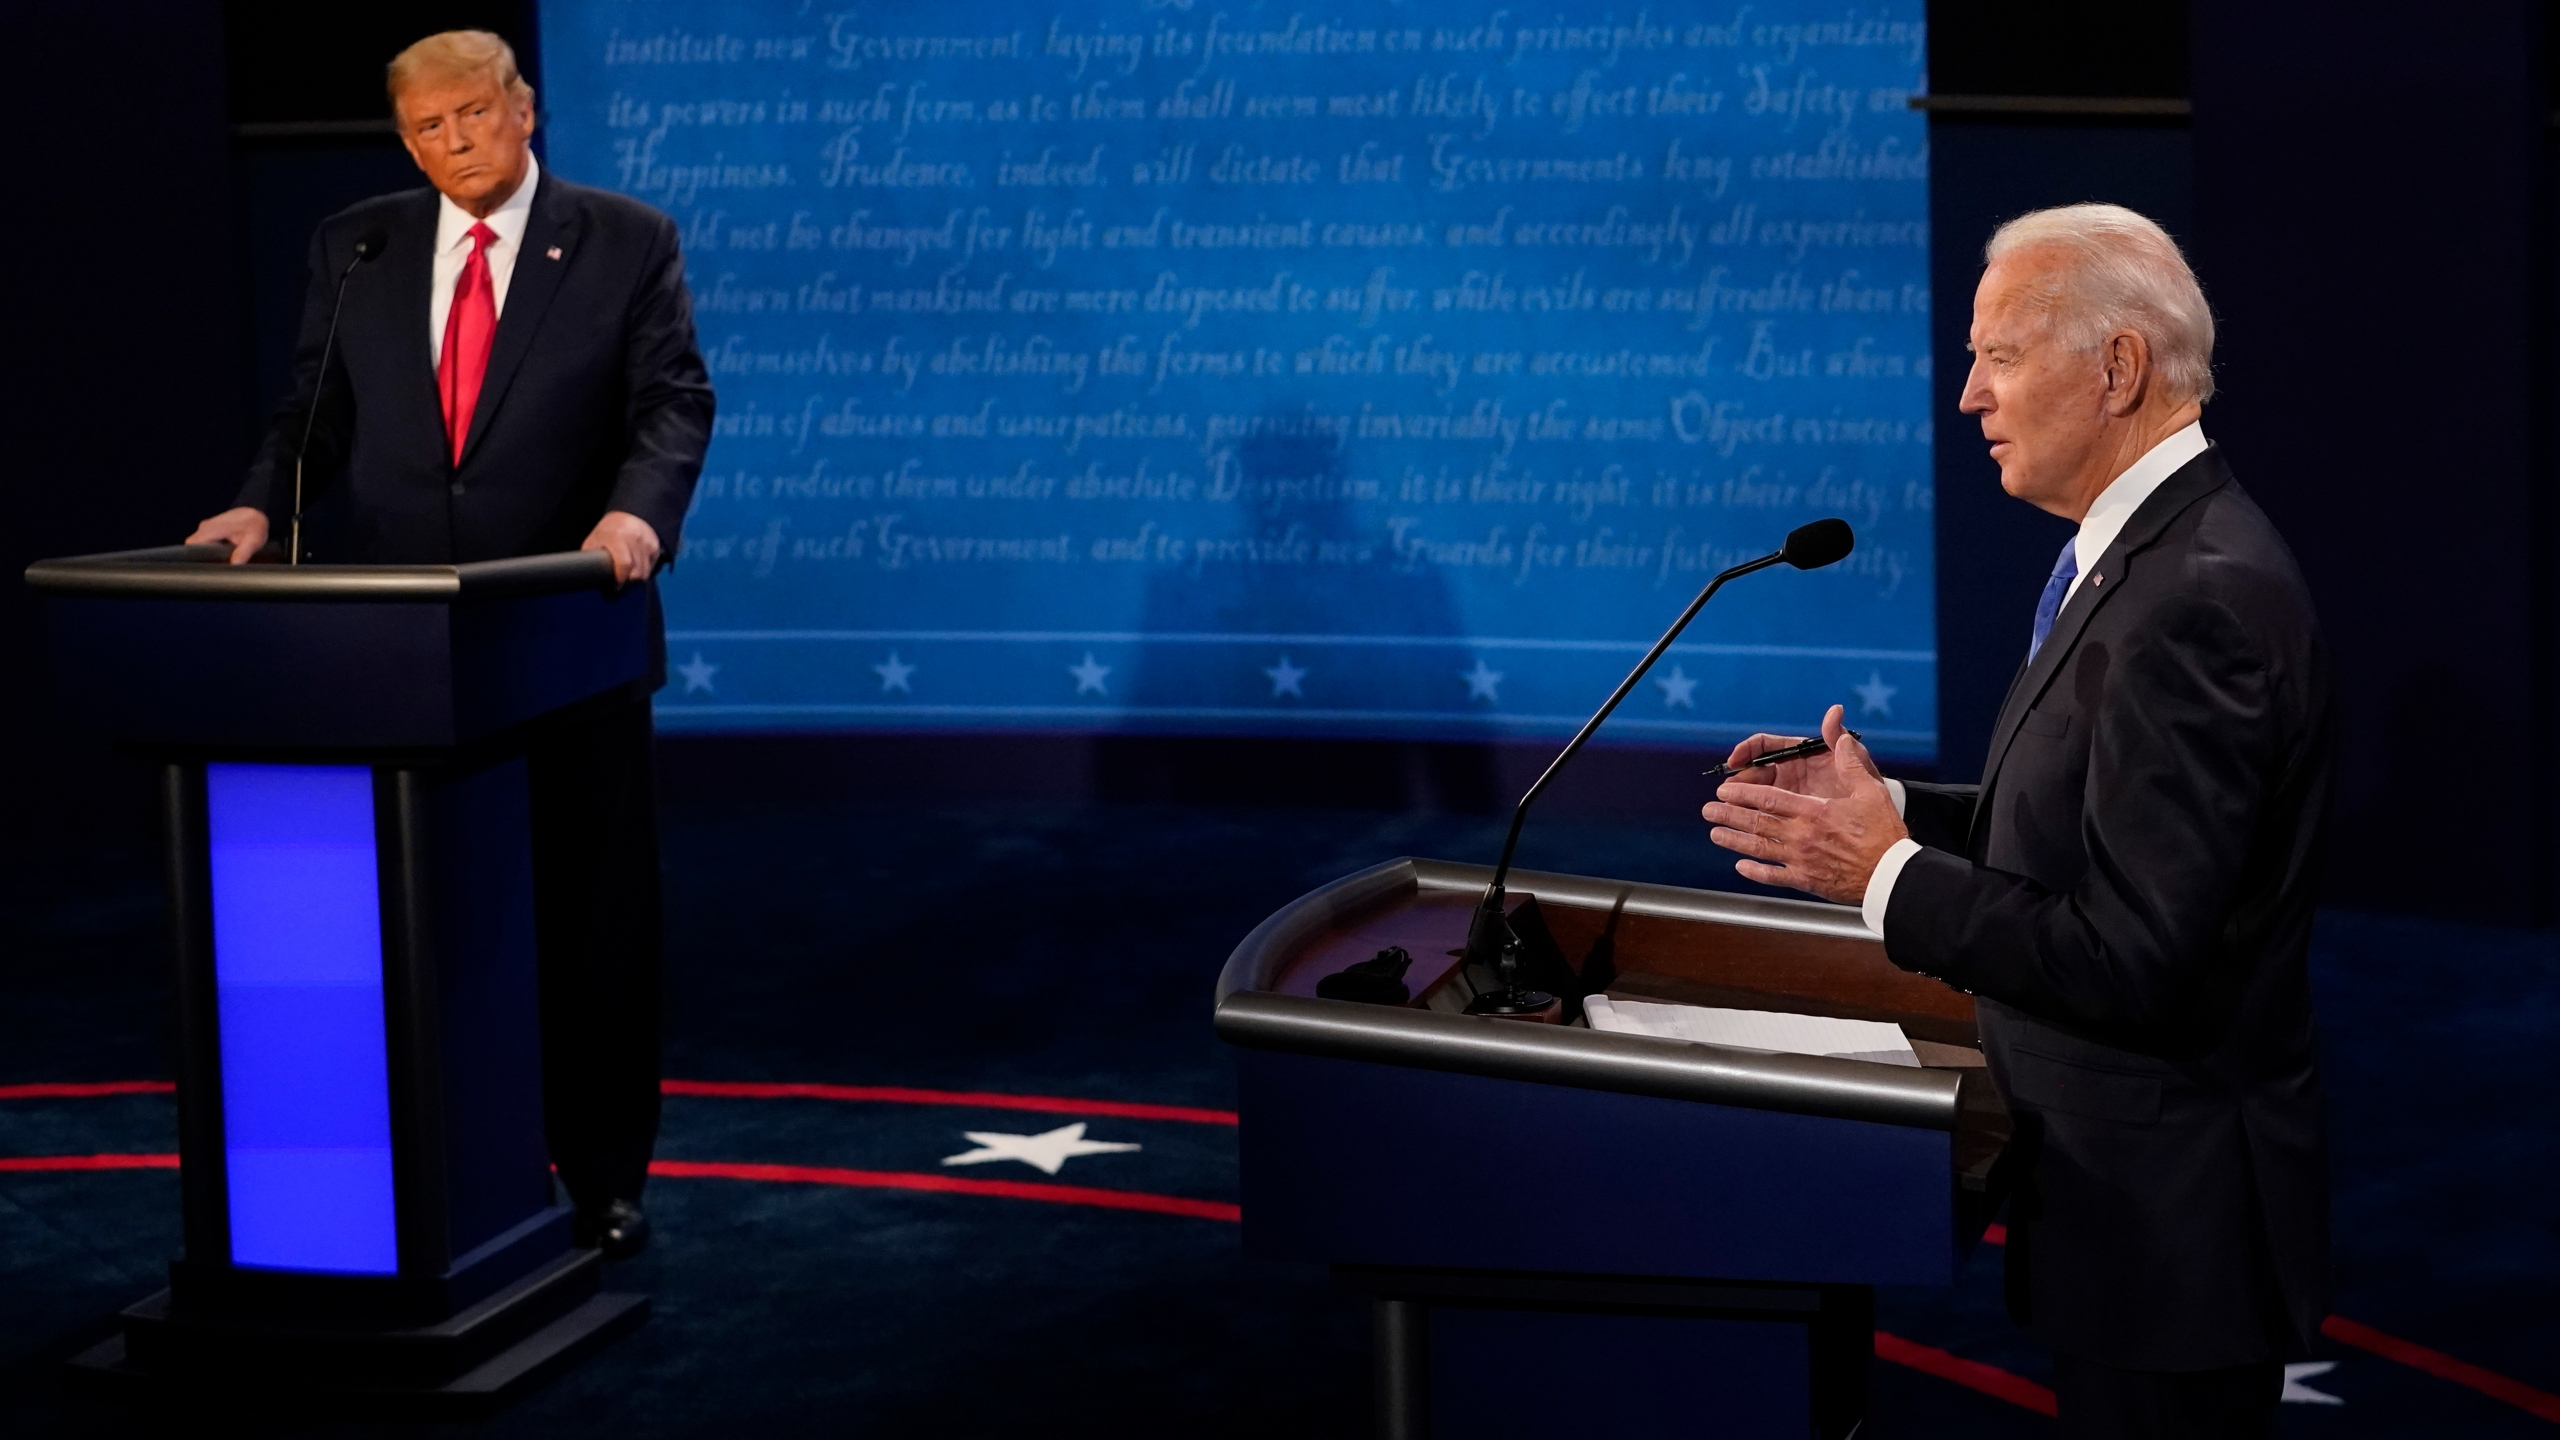 Democratic presidential candidate former Vice President Joe Biden answers a question as President Donald Trump listens during the second and final presidential debate at Belmont University in Nashville, Tennessee, on Oct. 22, 2020. (Morry Gash / Getty Images)